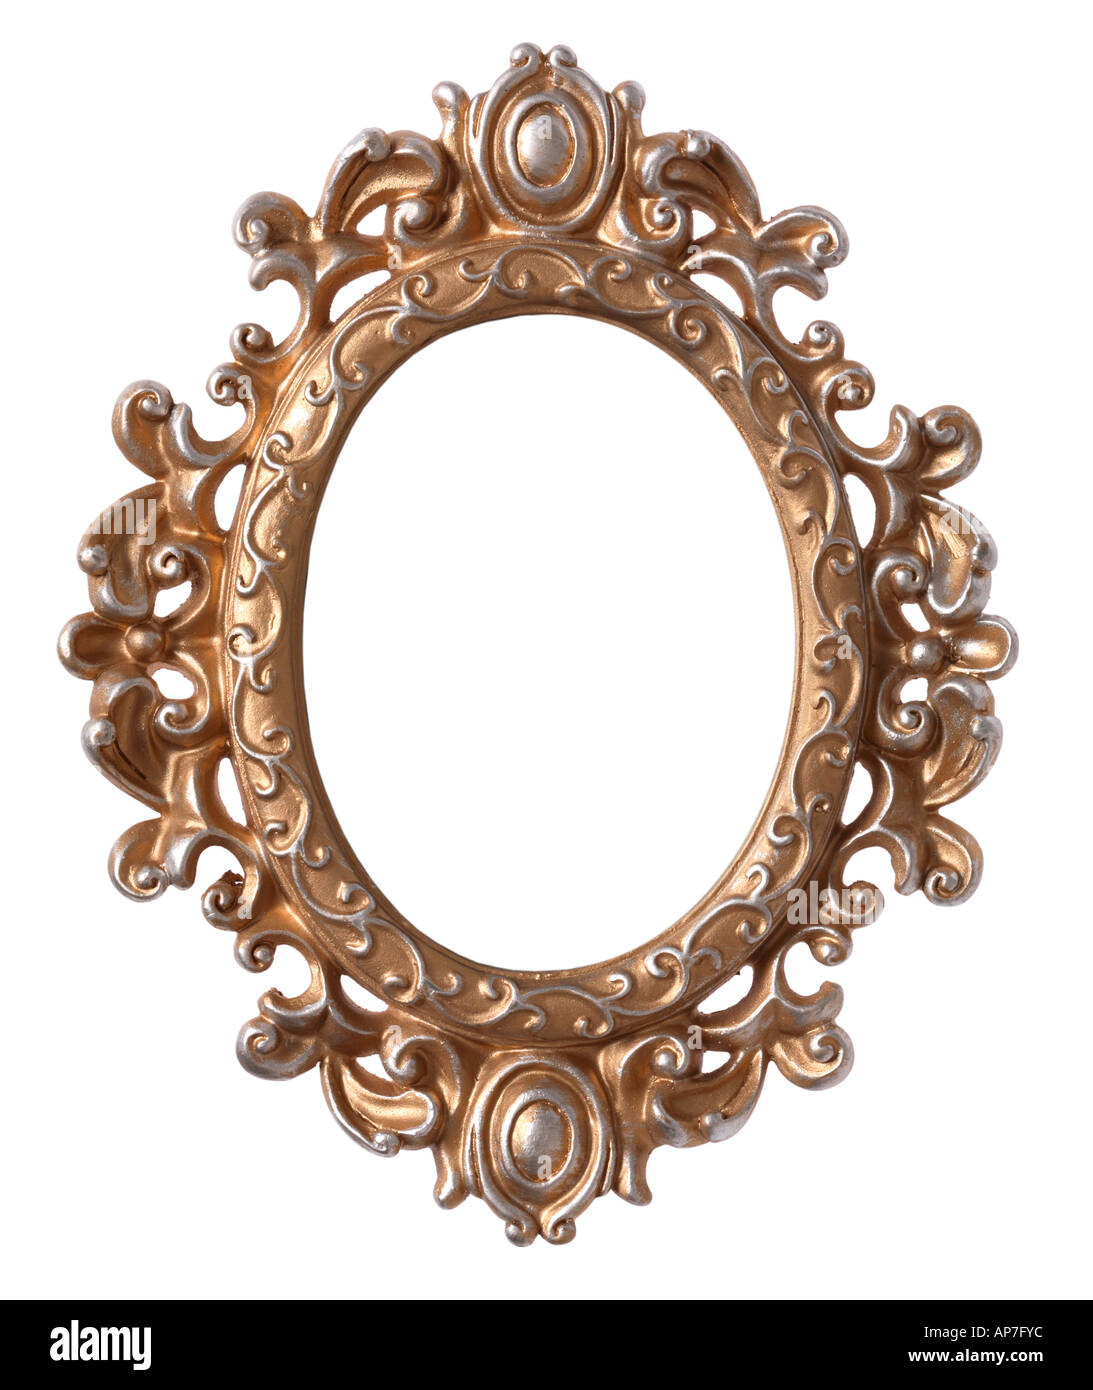 Ornate Oval Picture Frame - Stock Image